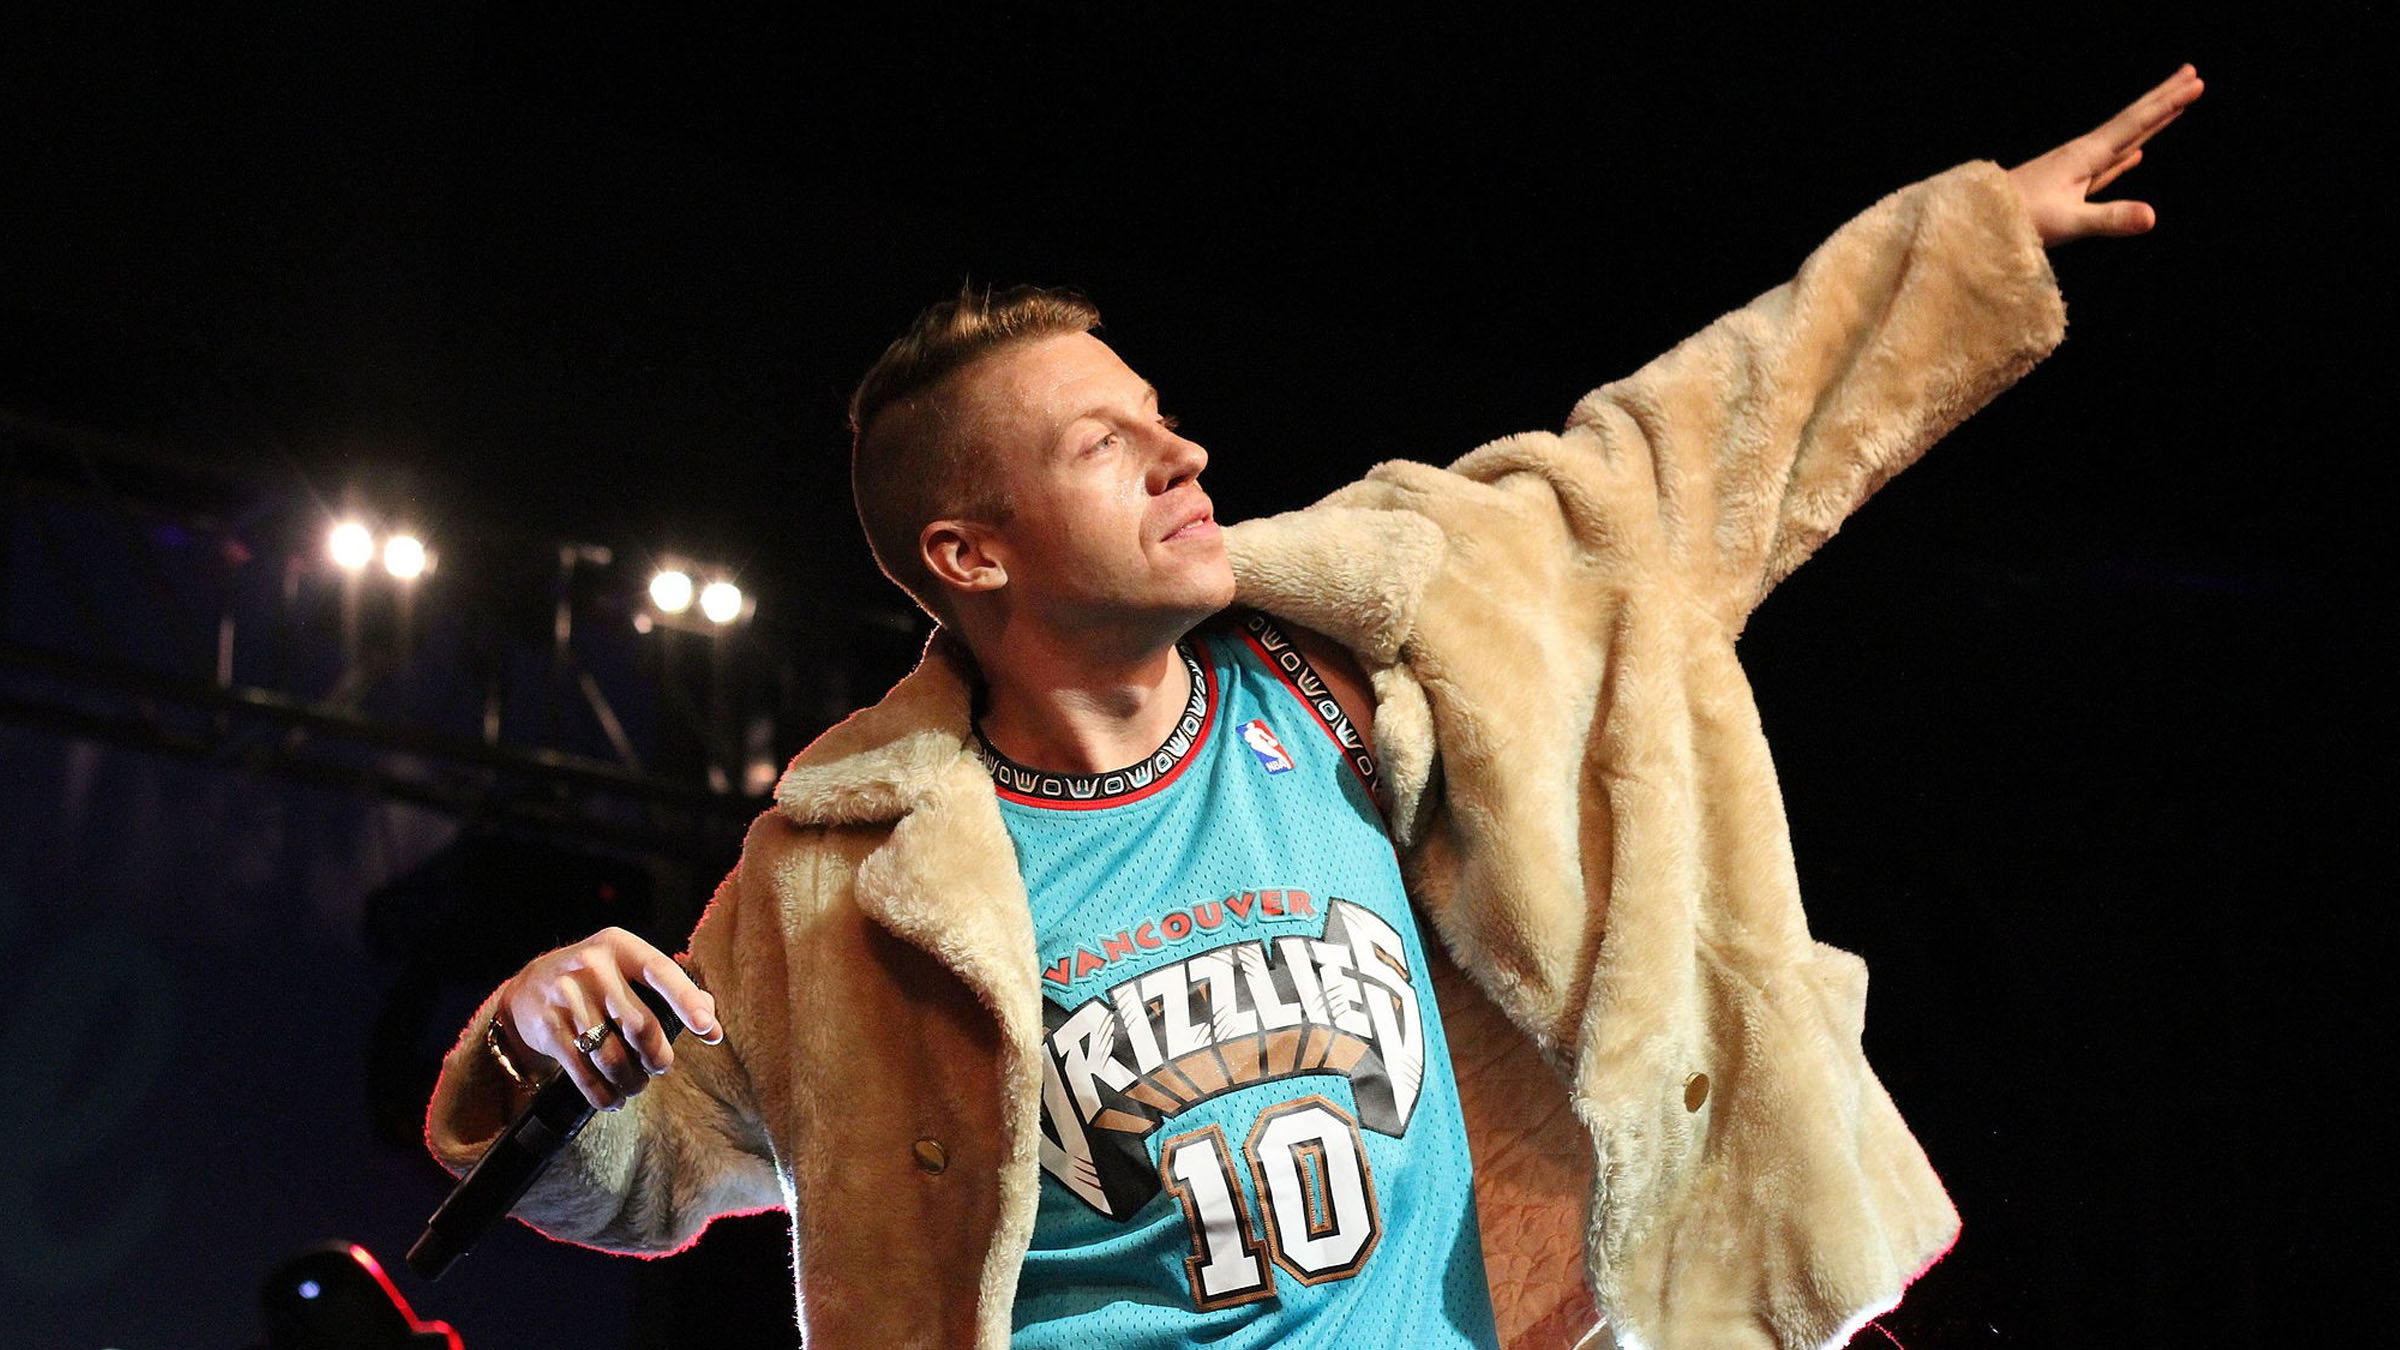 Macklemorehome